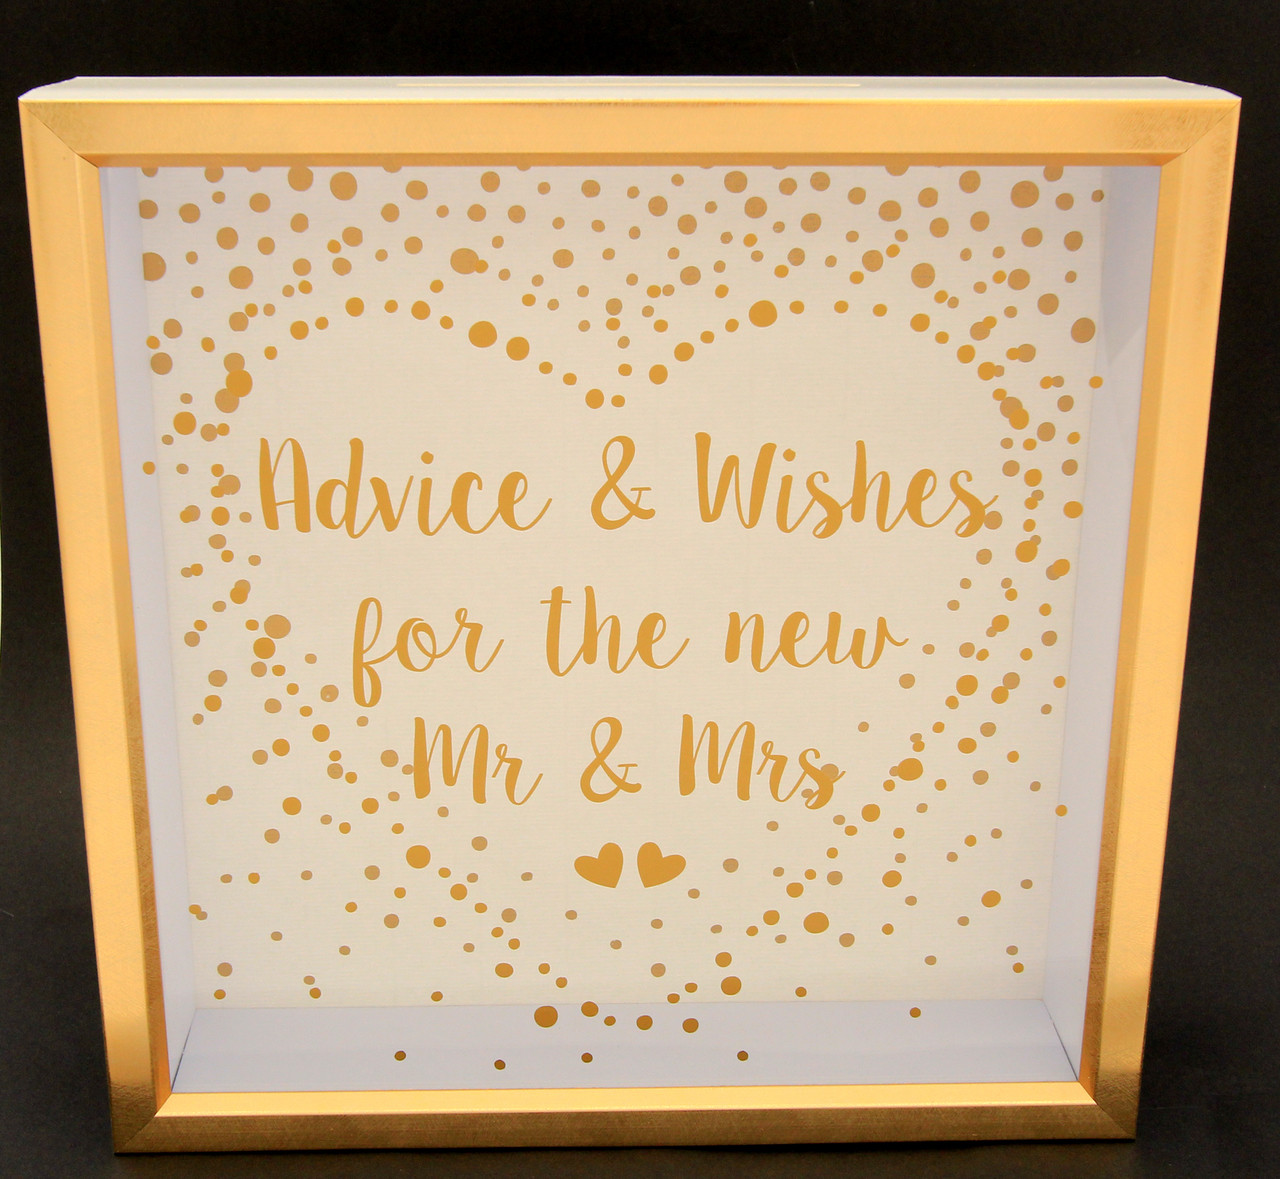 Wedding Card Wishes.Advice And Wishes Wedding Card Box Beautiful Frames